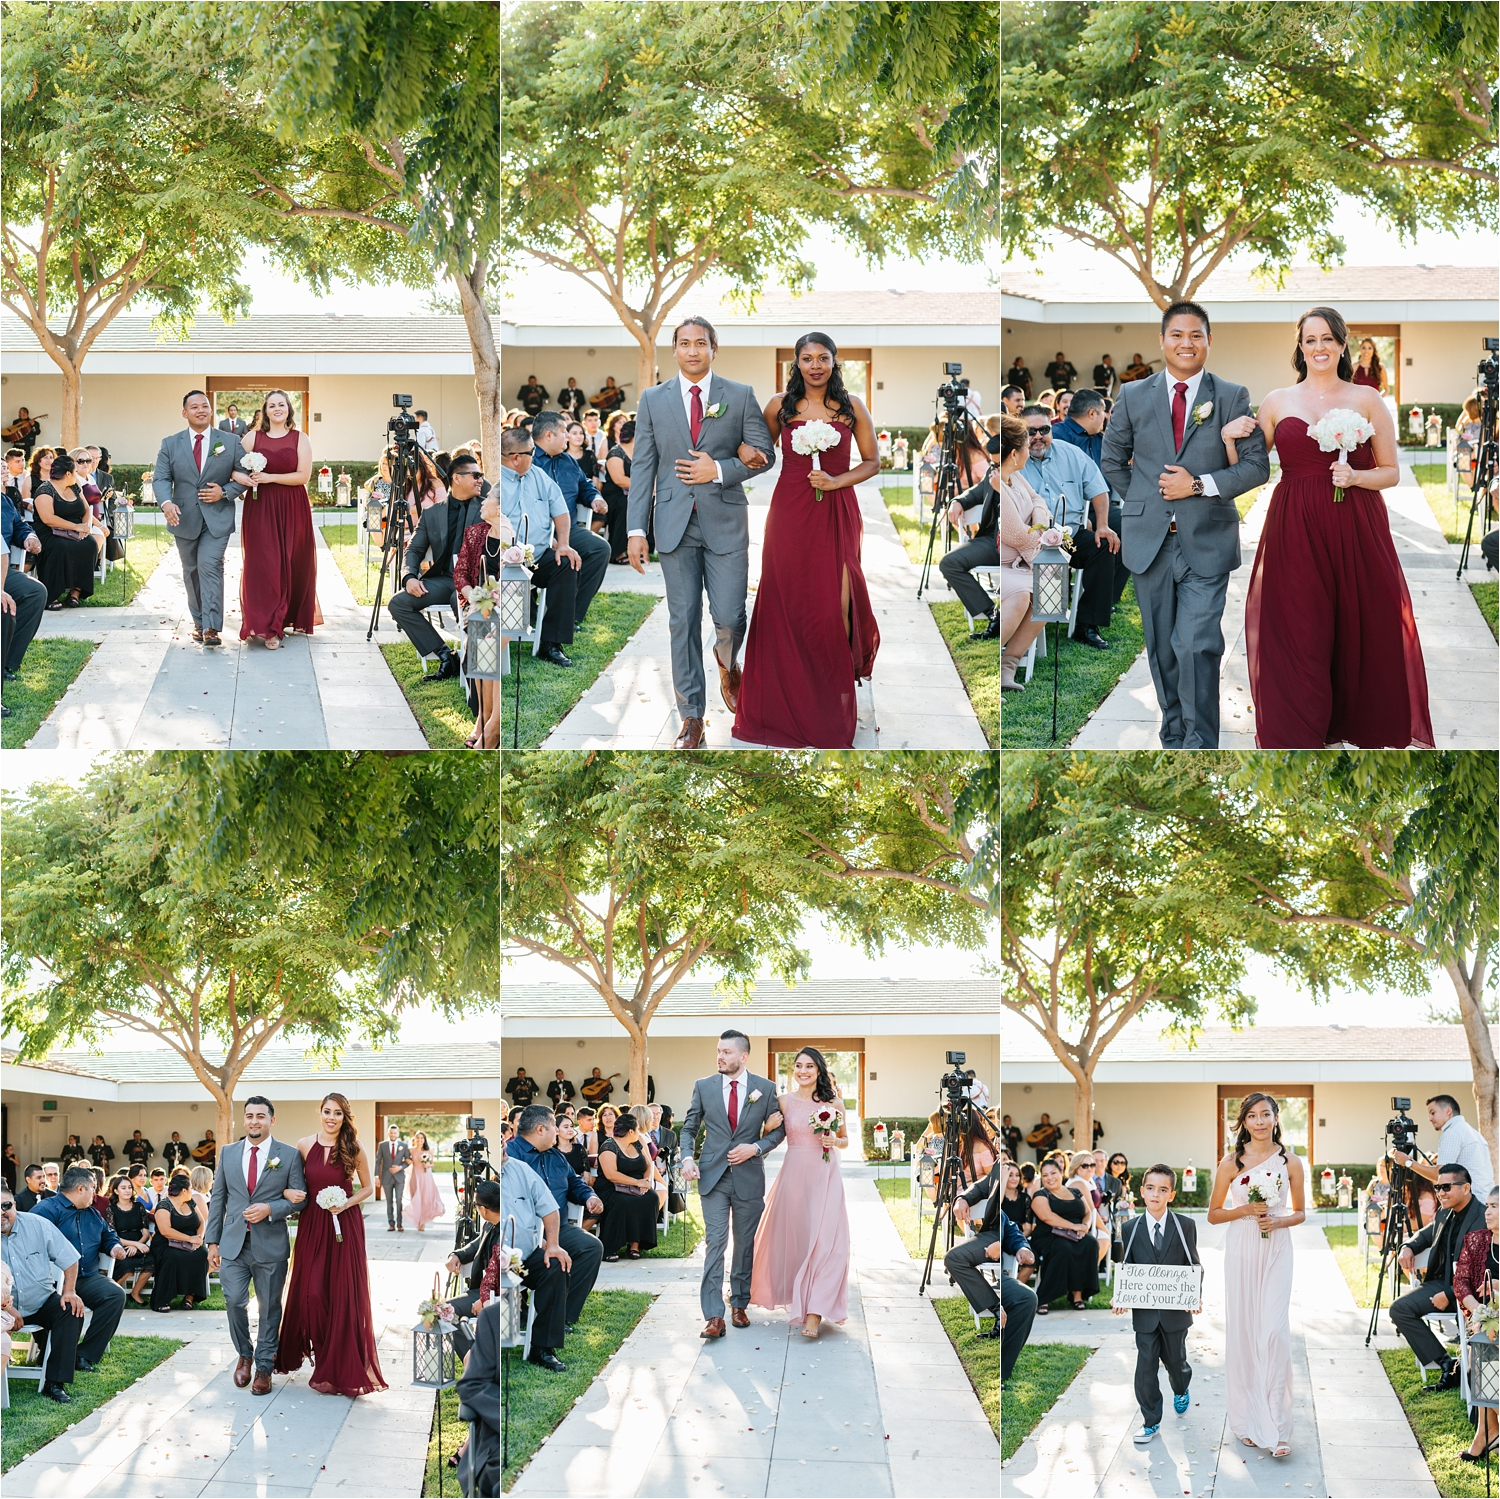 Bridesmaids and Groomsmen walking down the aisle - https://brittneyhannonphotography.com